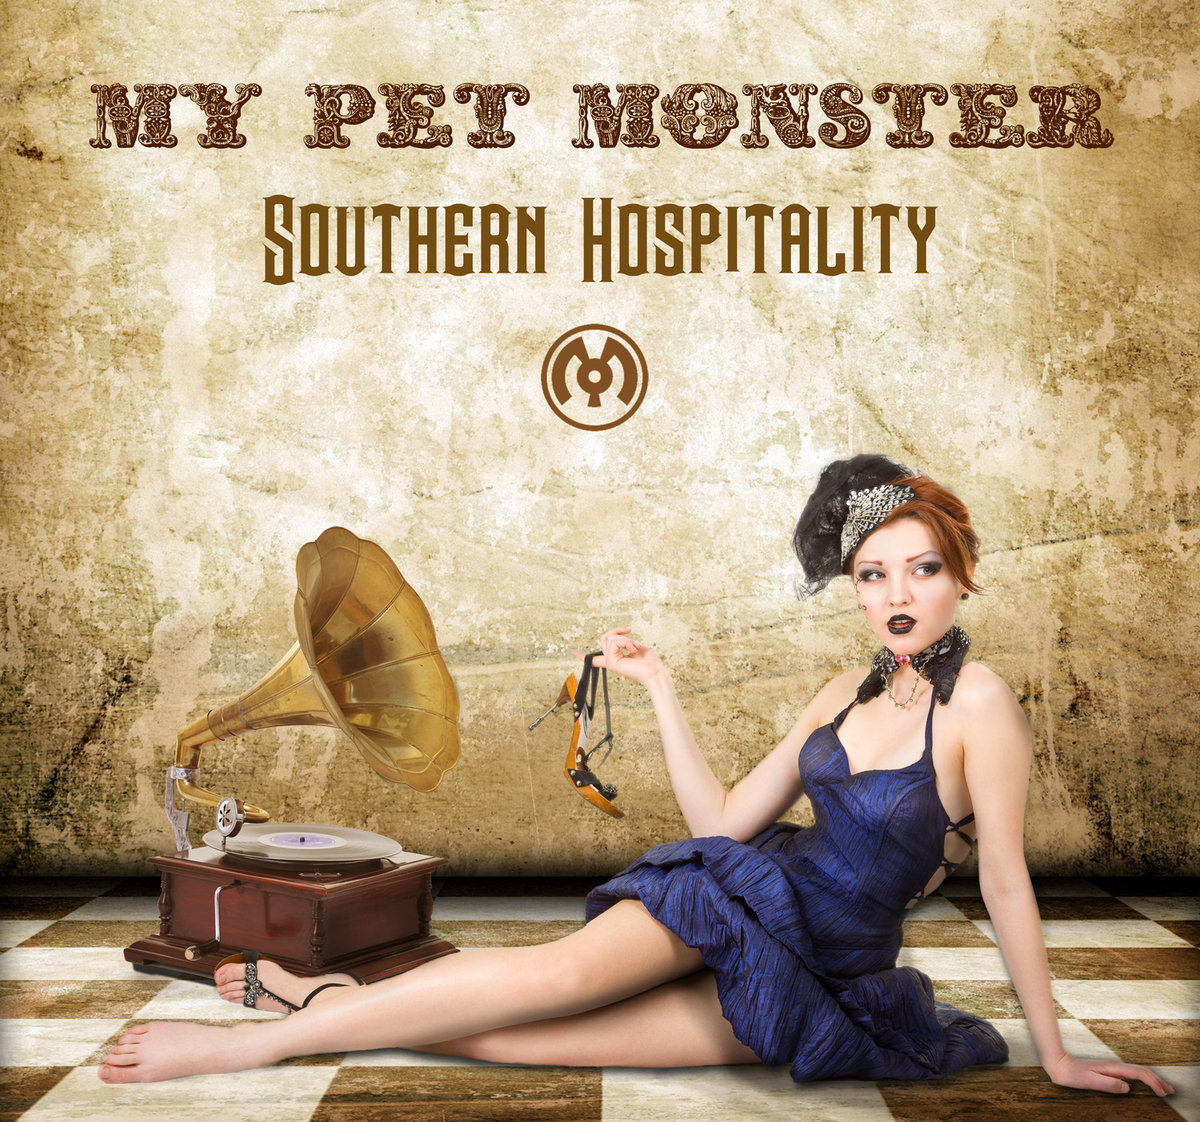 My Pet Monster - Tennessee Tumbleweed @ 'Southern Hospitality' album (electronic, dubstep)